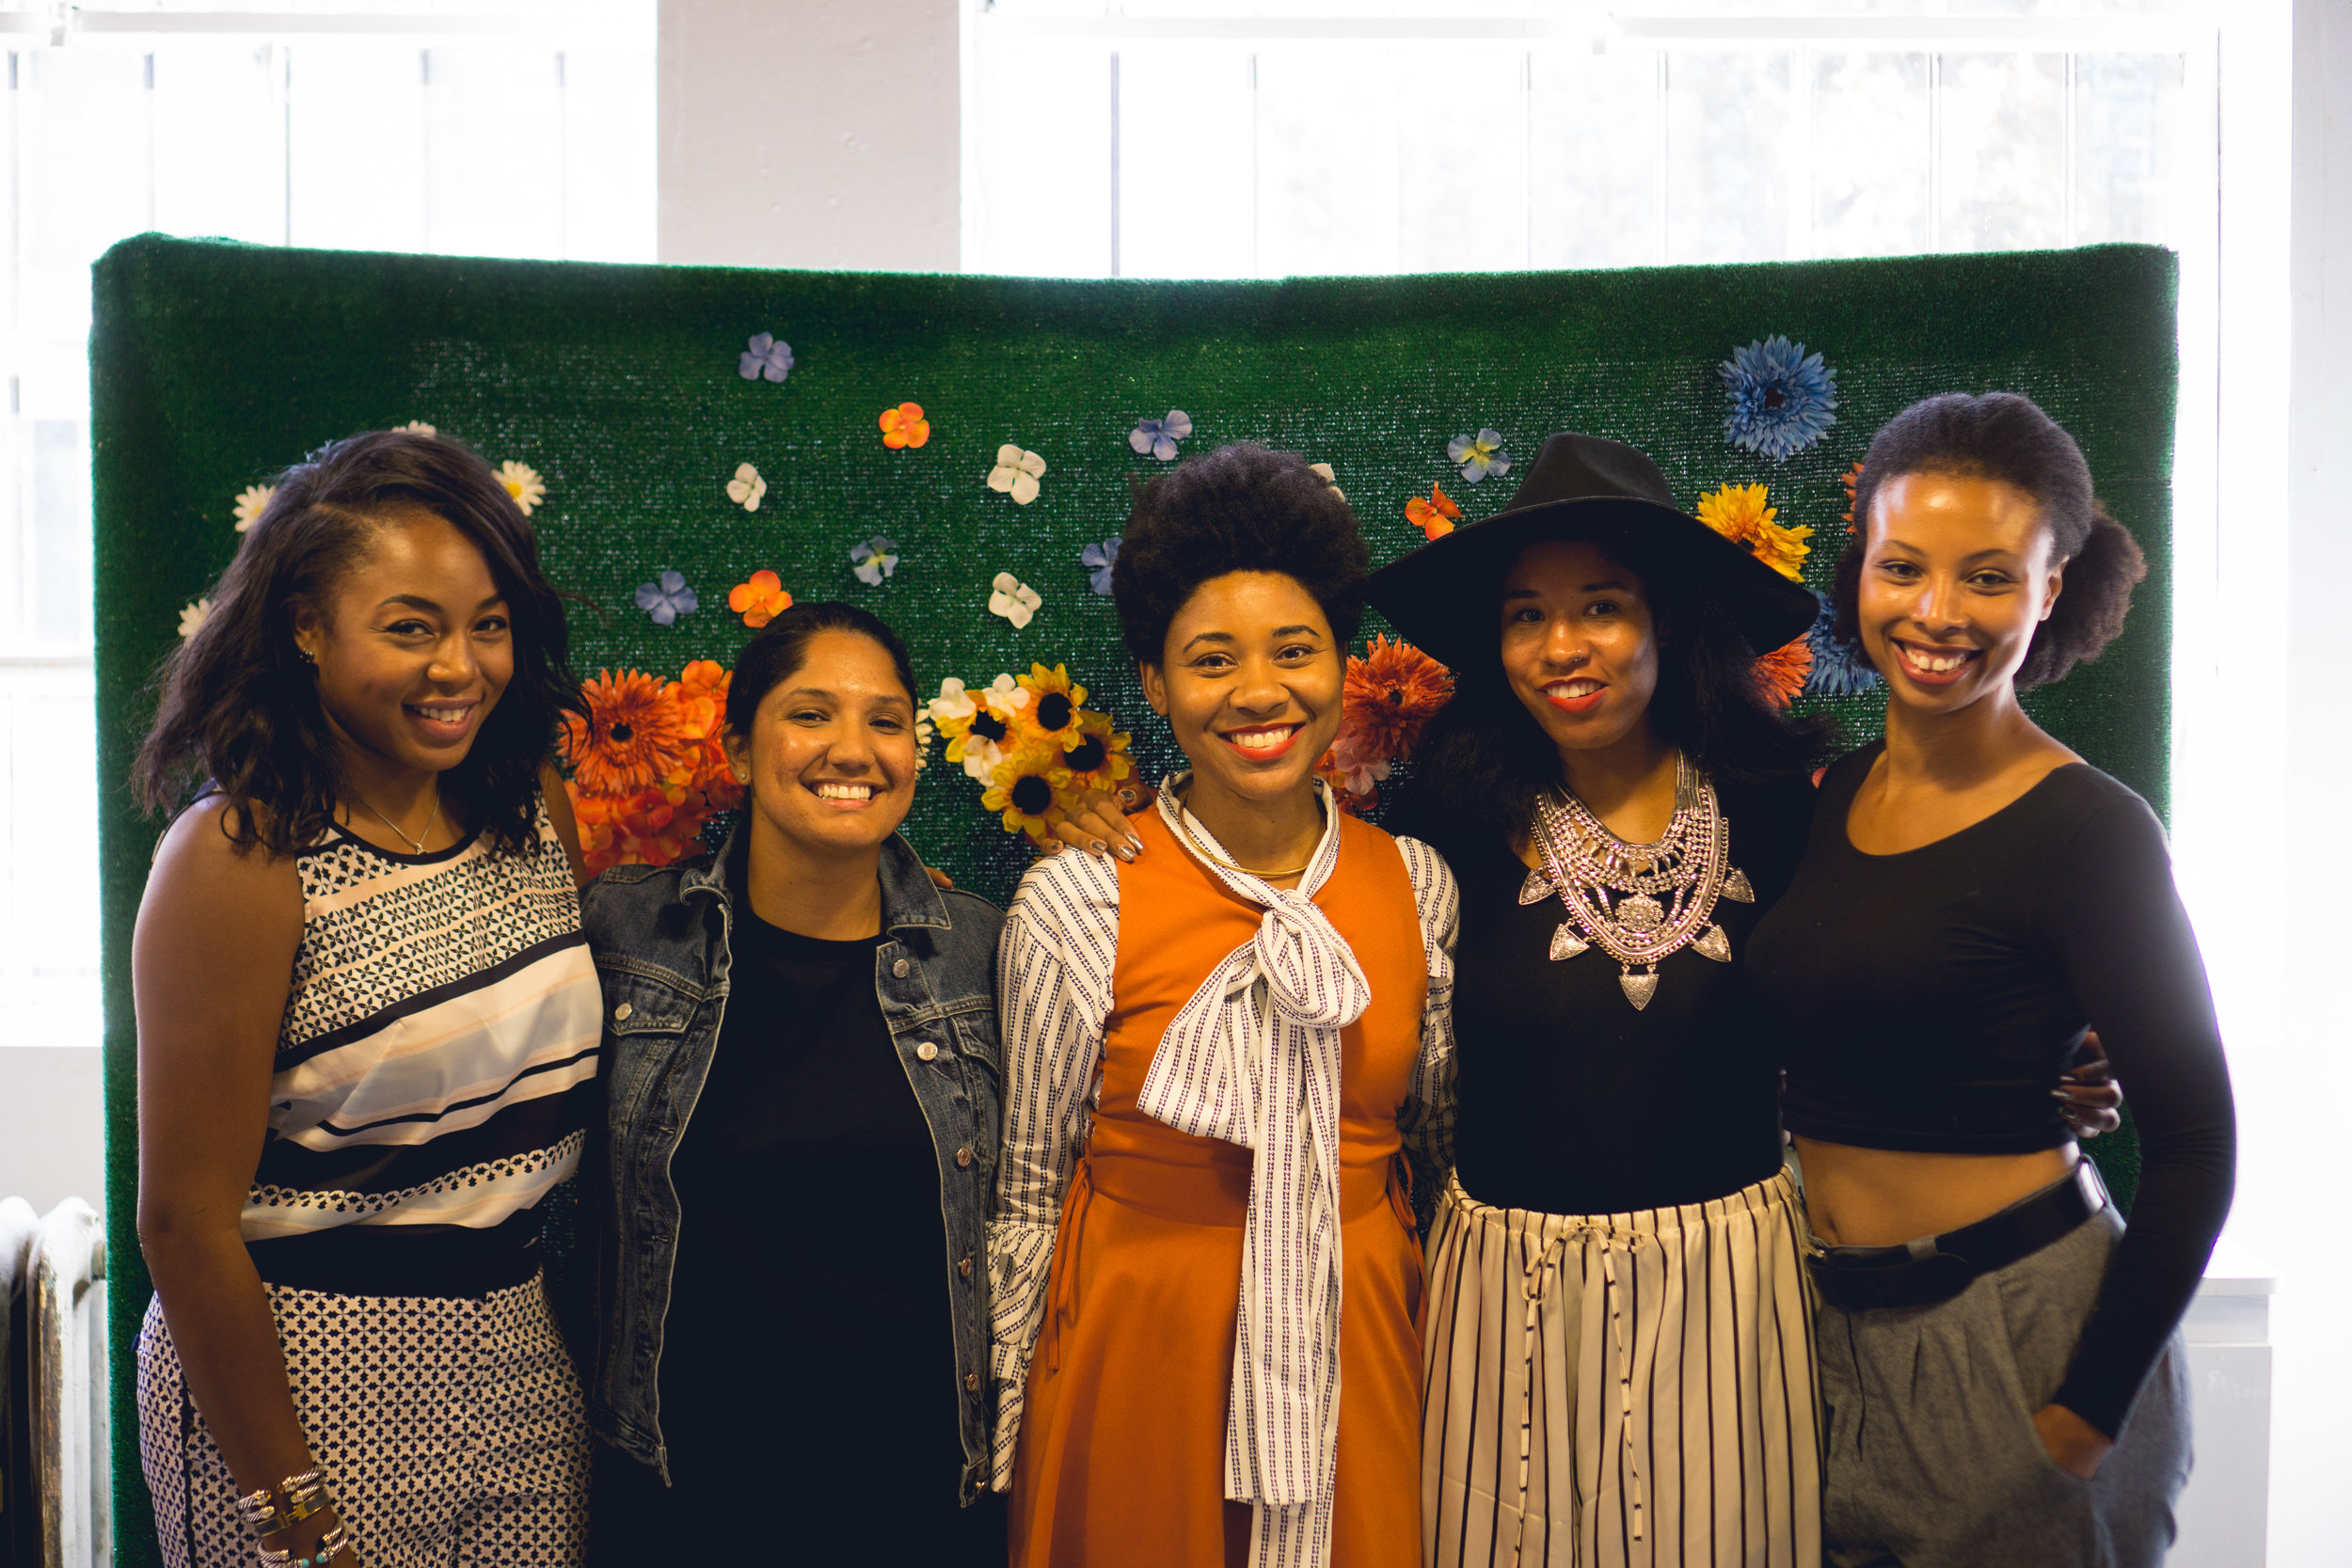 From left to right: Kéla Walker, Bernadette Pichardo, Tamera Darden, Victoria Sanders and Alexia Lewis